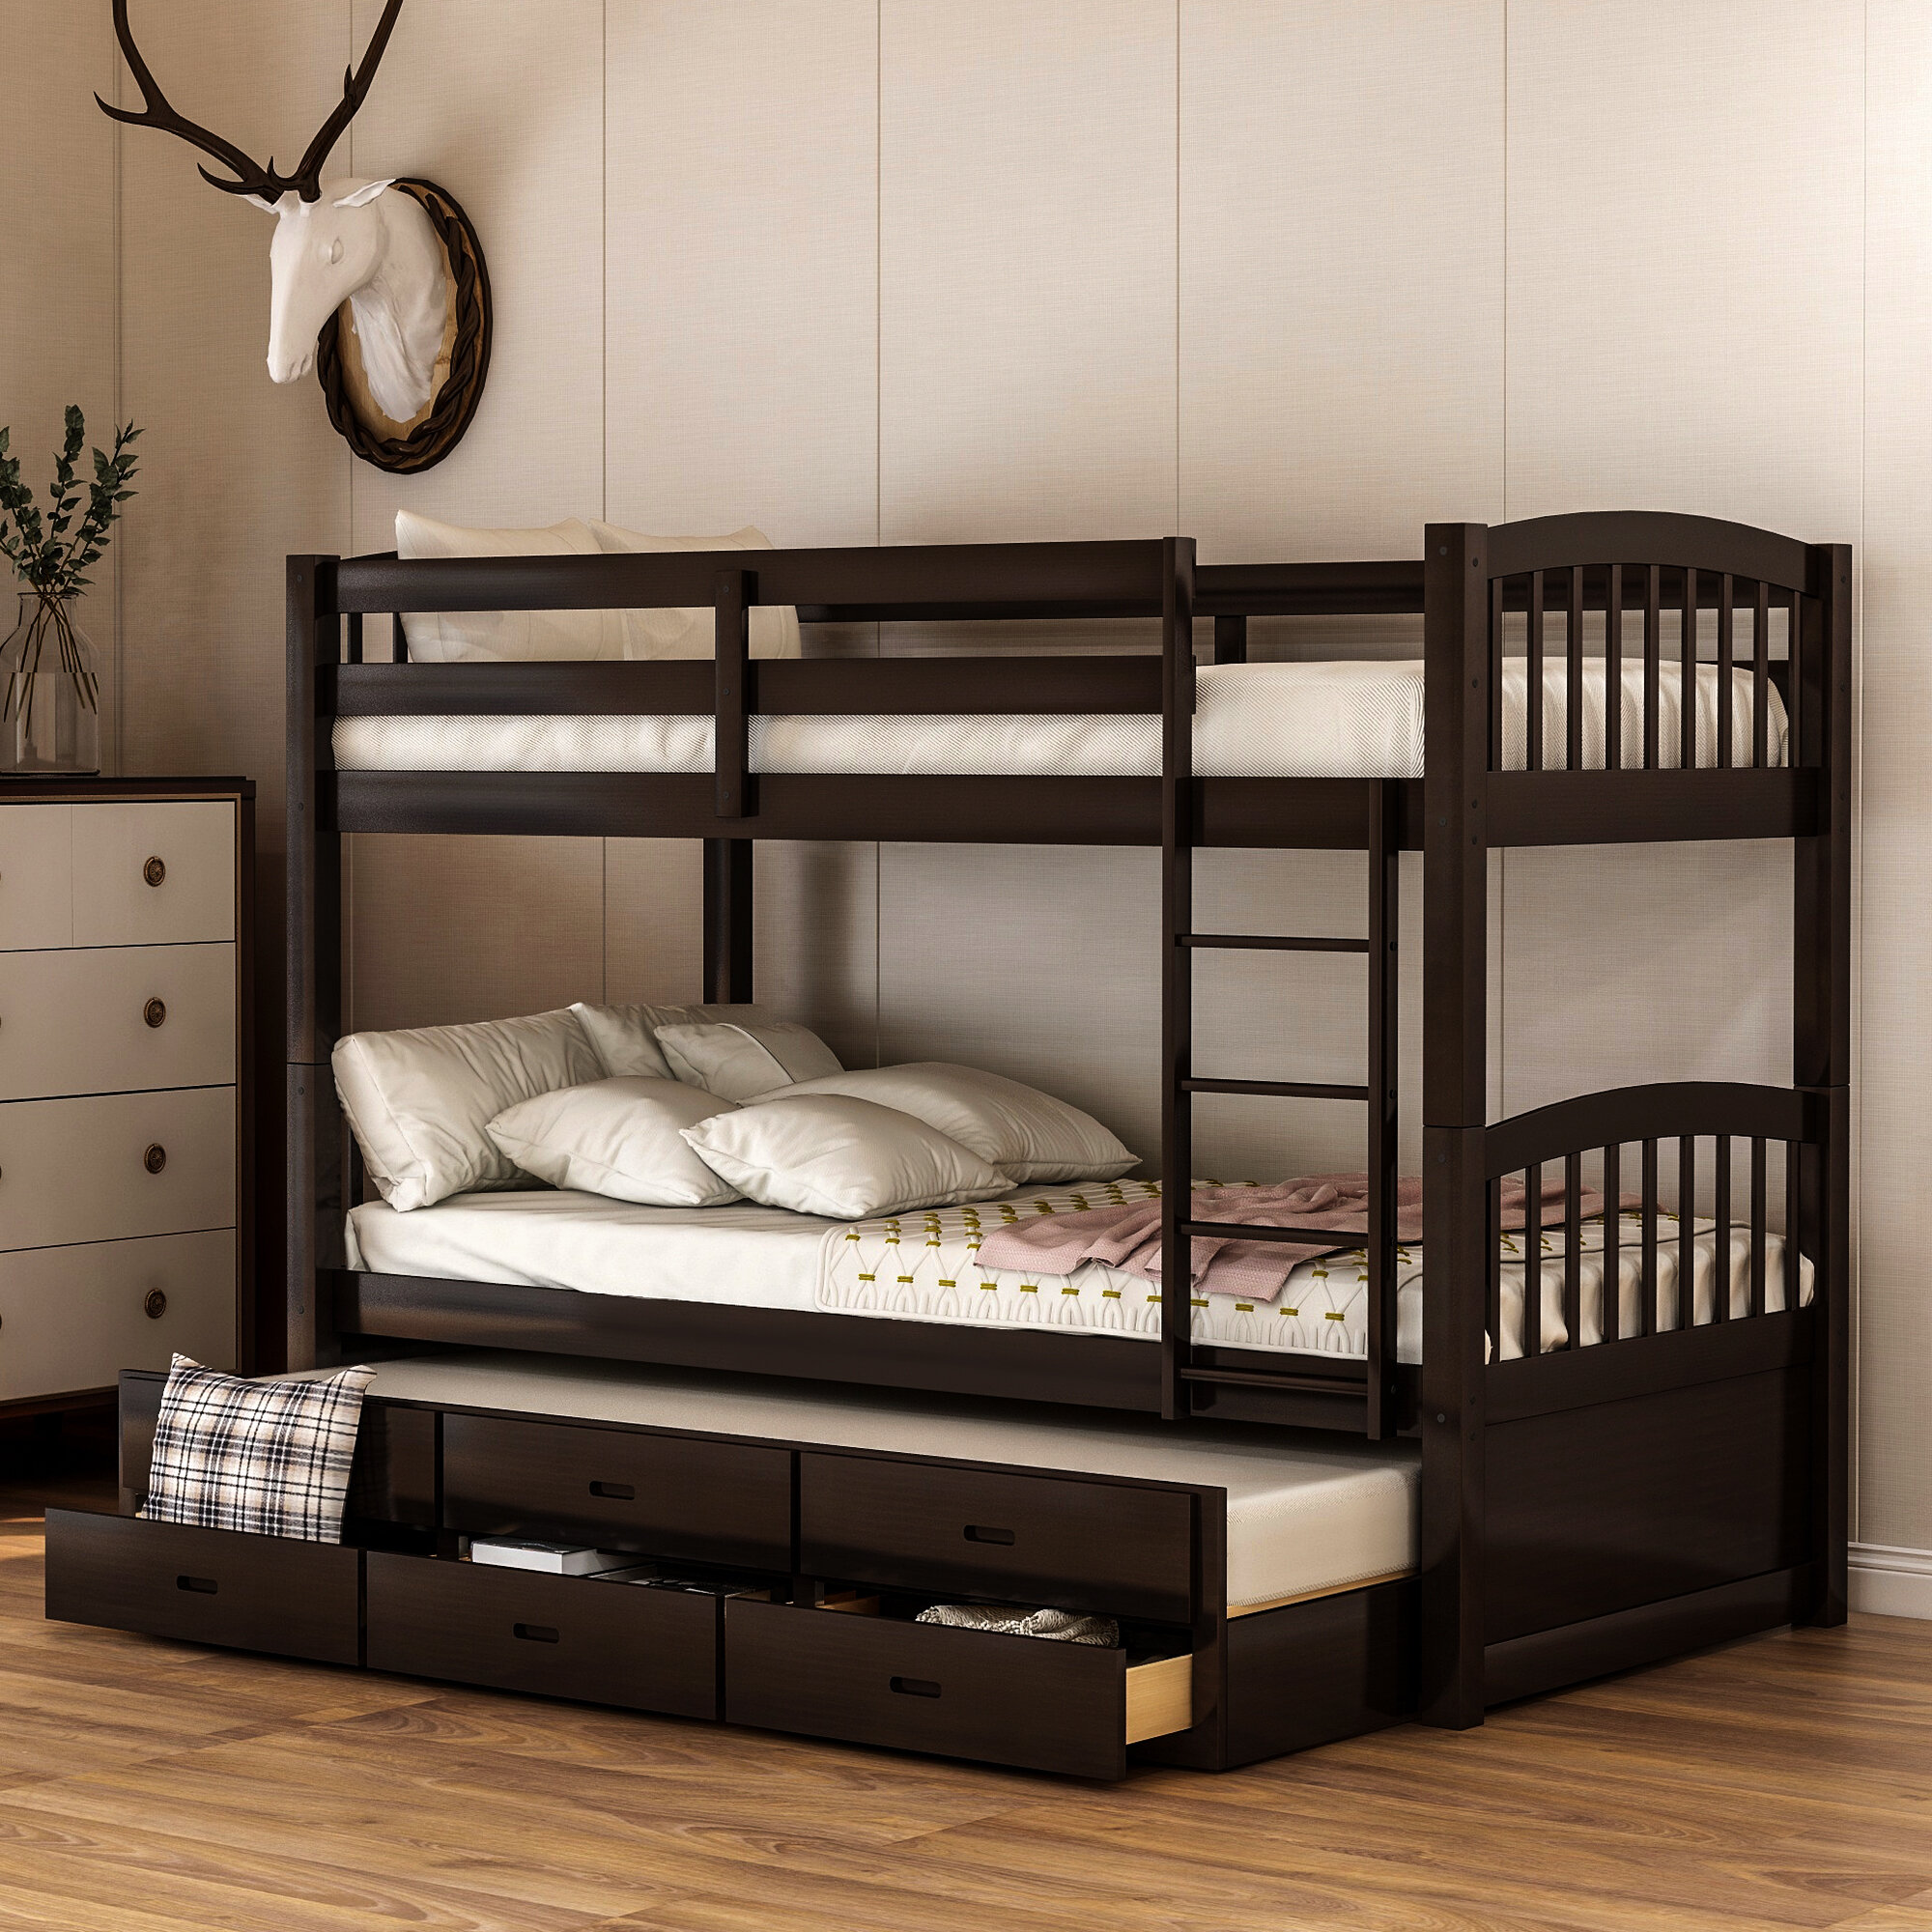 Image of: Harriet Bee Bovary Kid Twin Bunk Bed With Trundle Wayfair